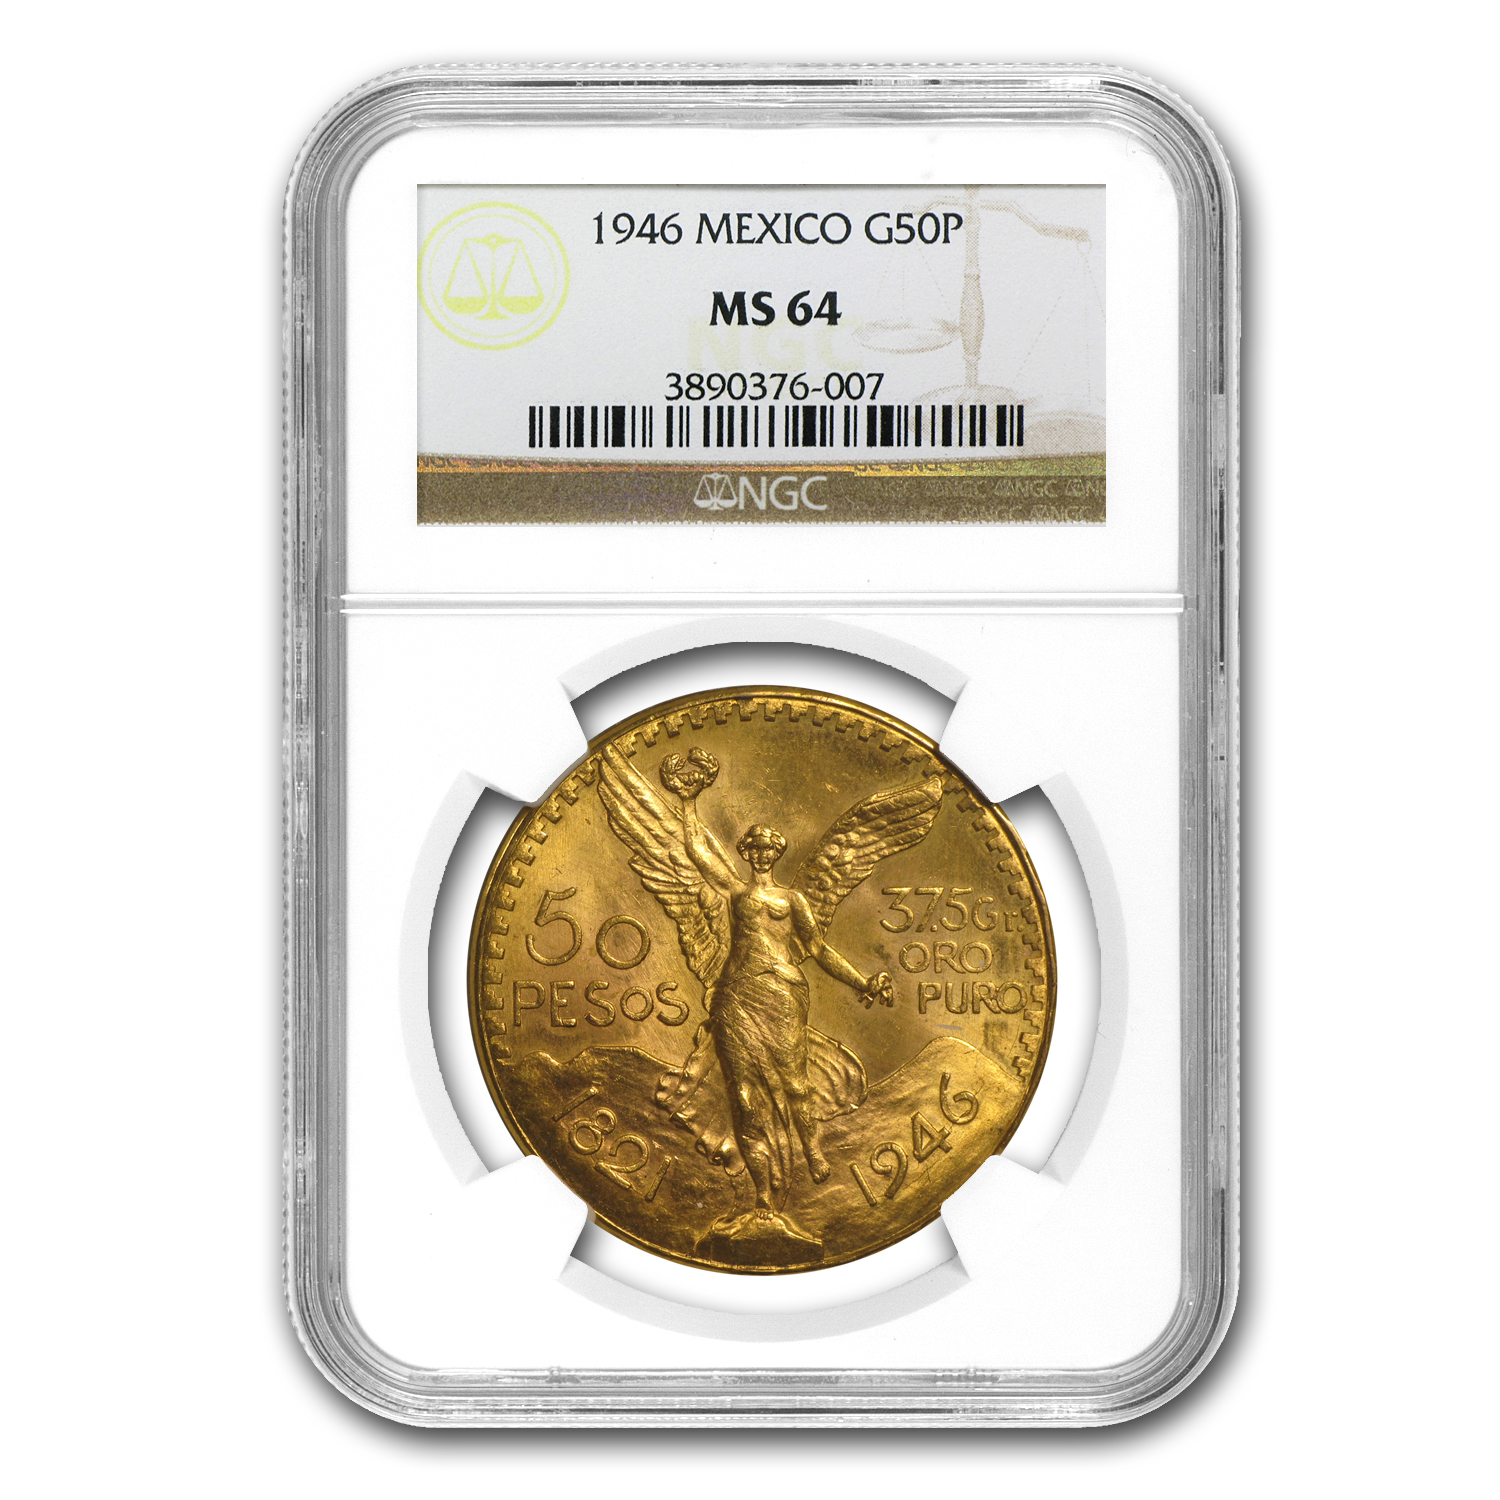 1946 Mexico Gold 50 Pesos MS-64 NGC